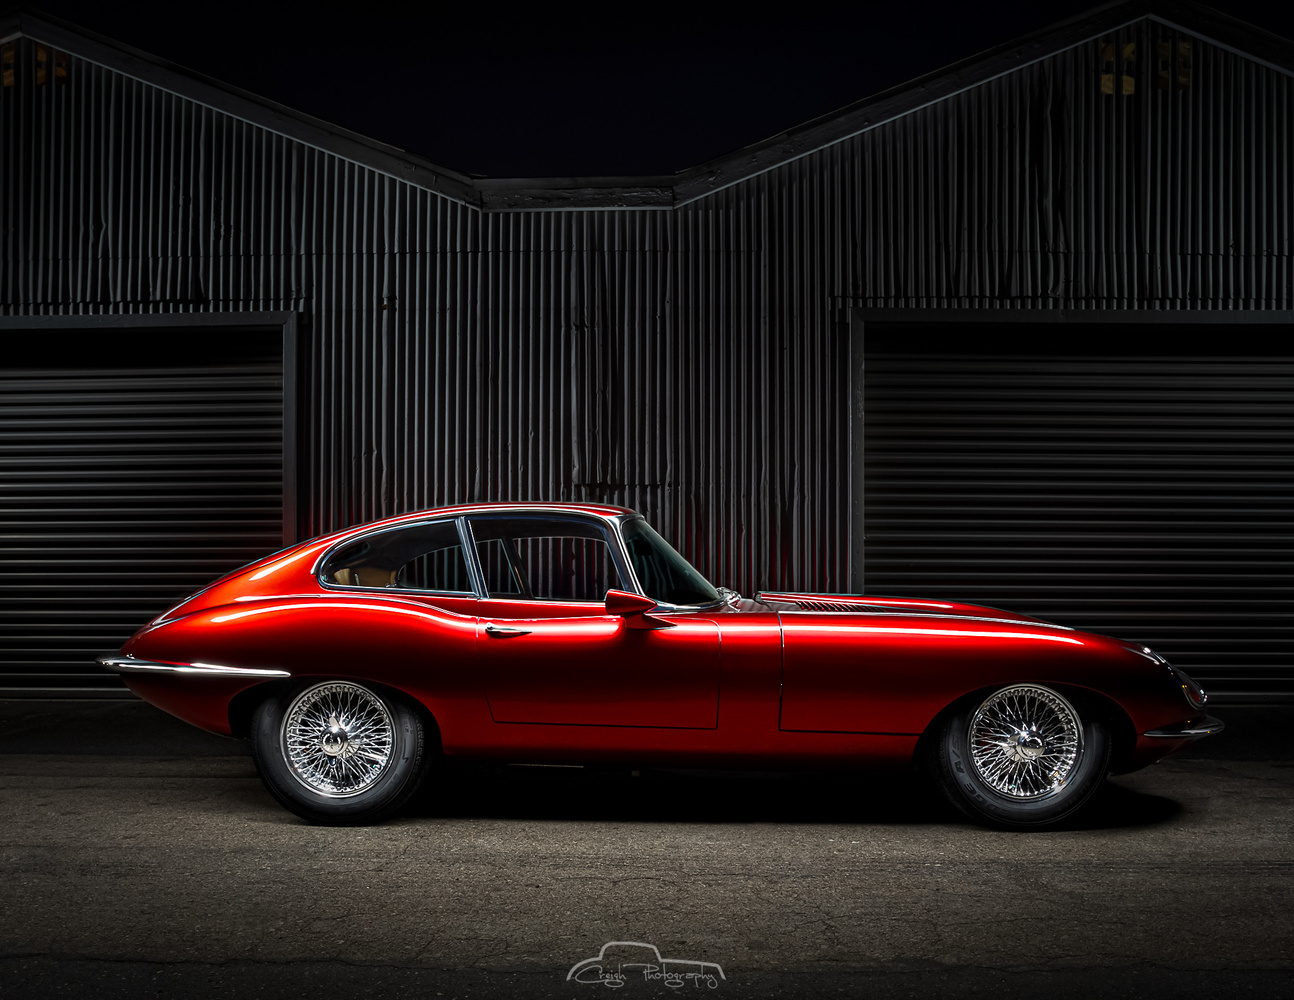 Jag Profile by Creigh McIntyre